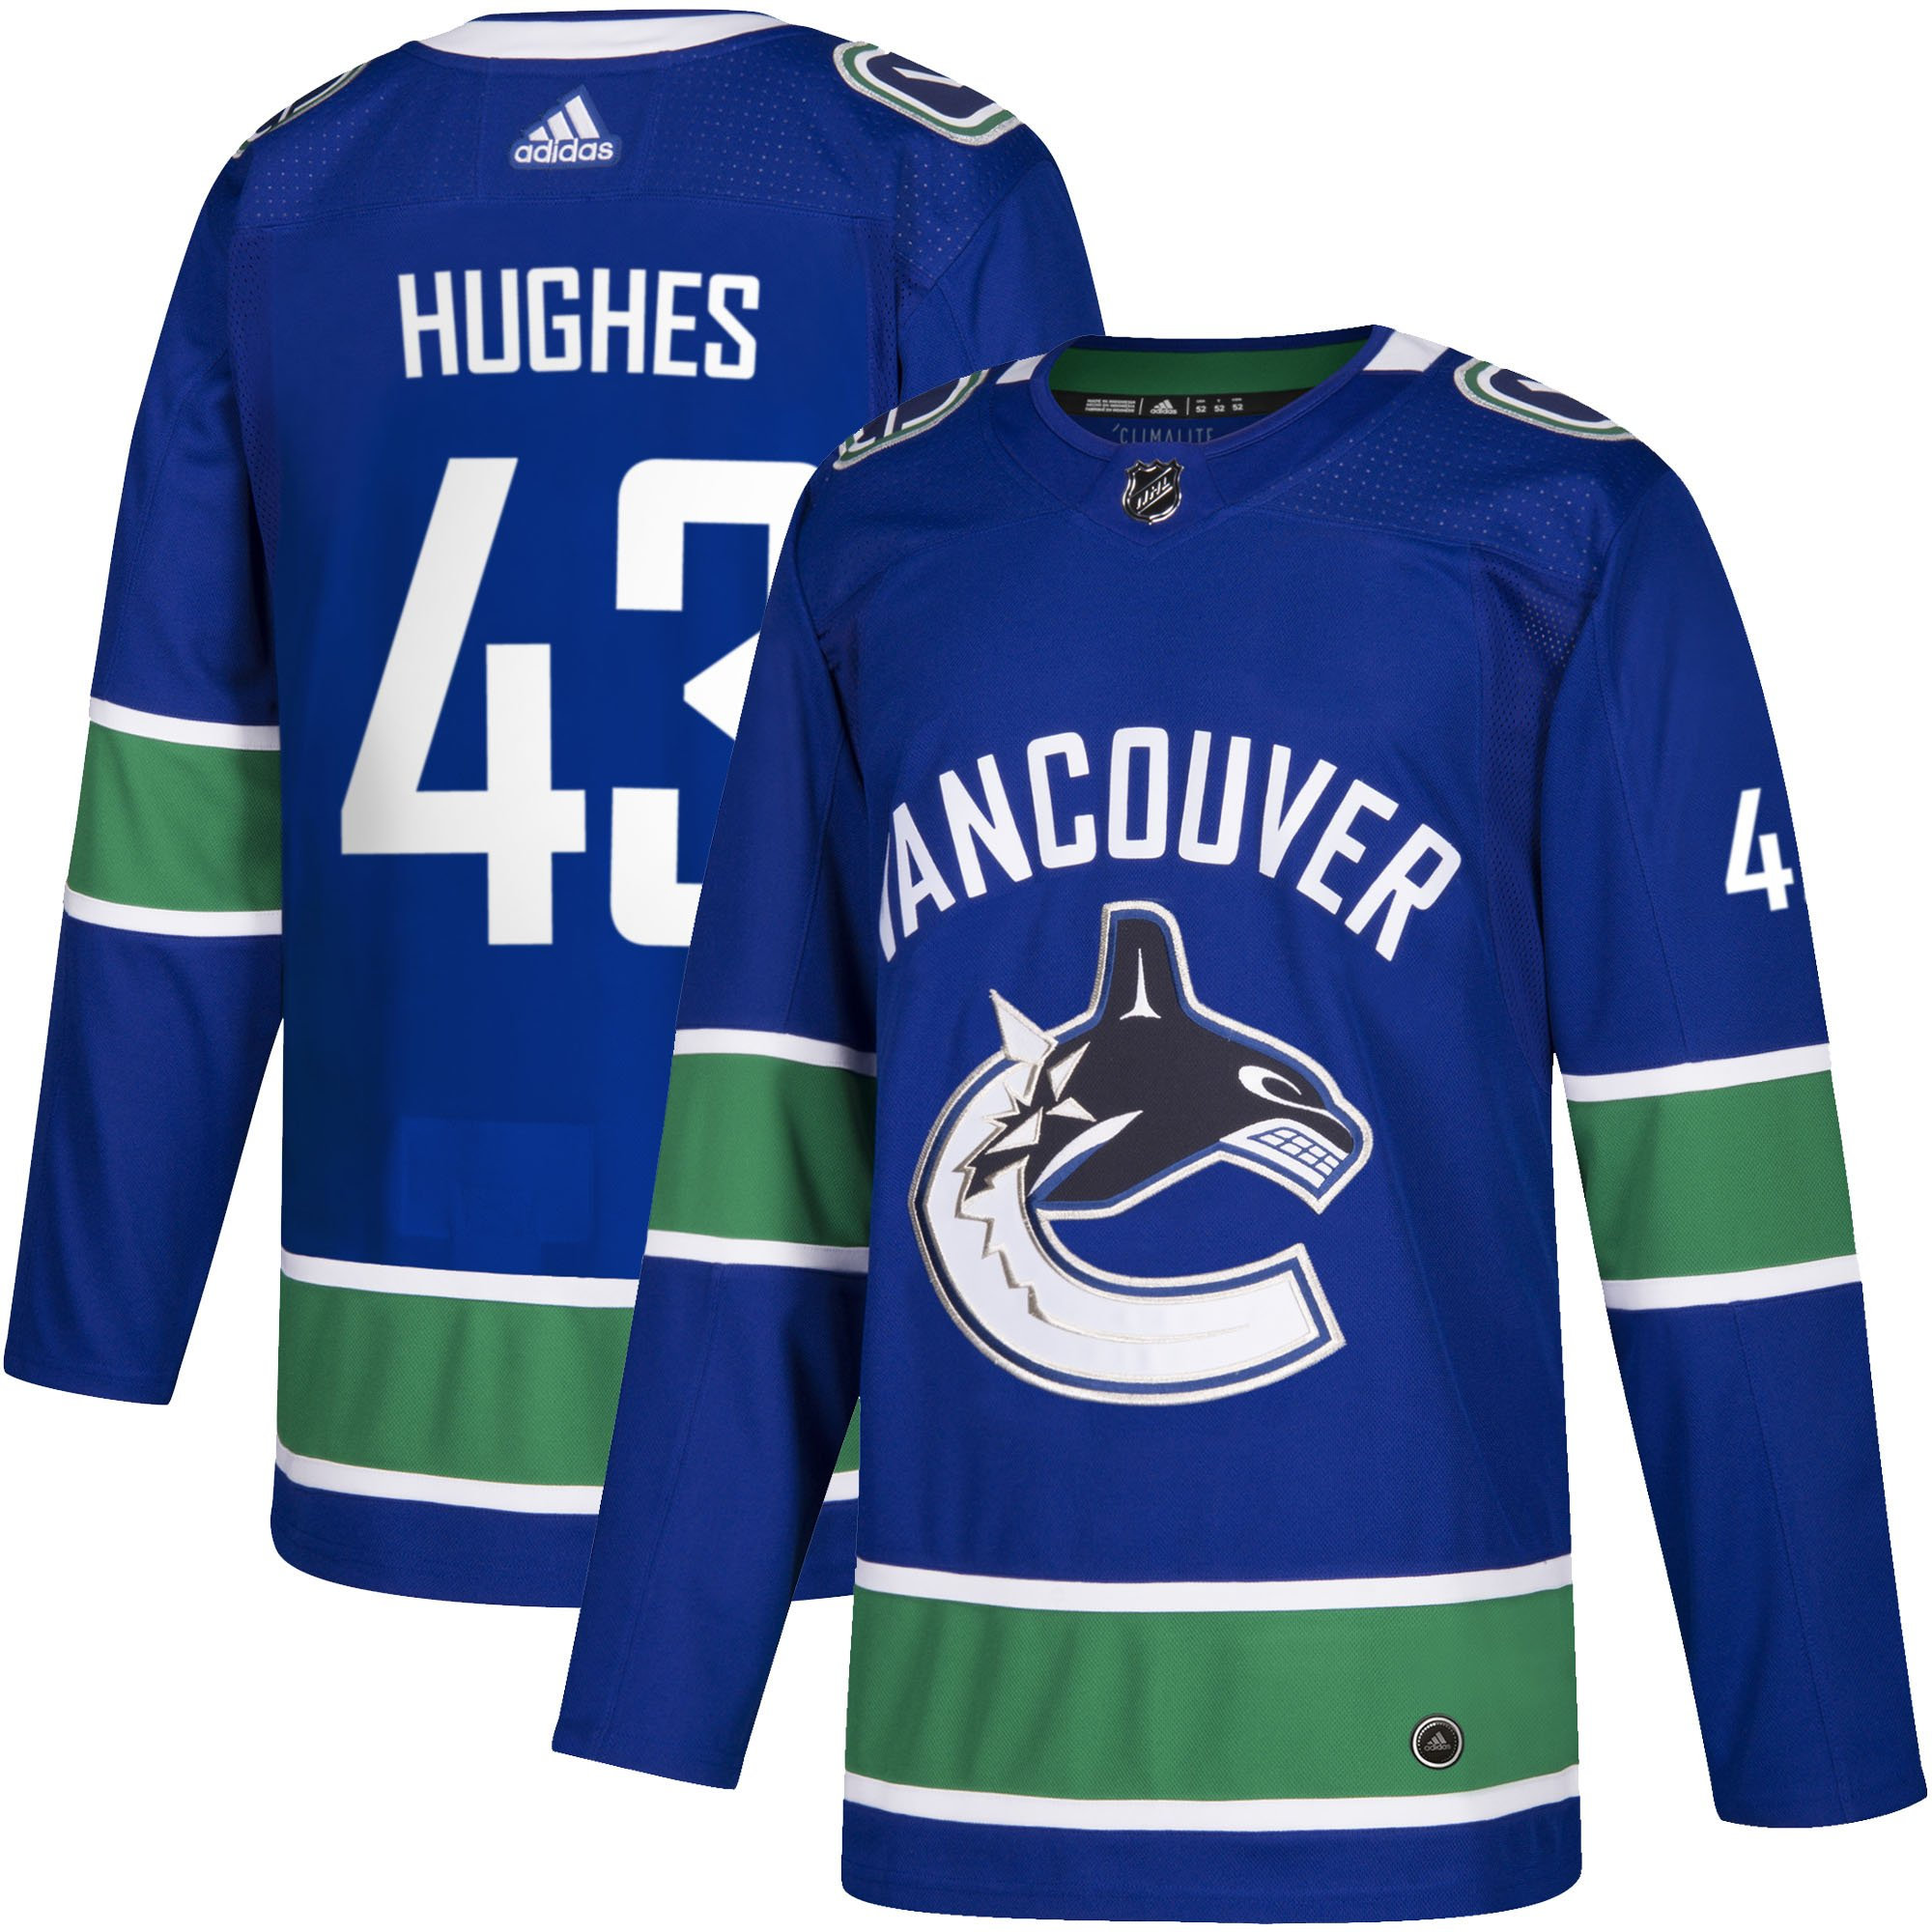 new product ef37a 03f4f Men's Vancouver Canucks Q. Hughes adidas adizero Blue Auth. Player Jersey